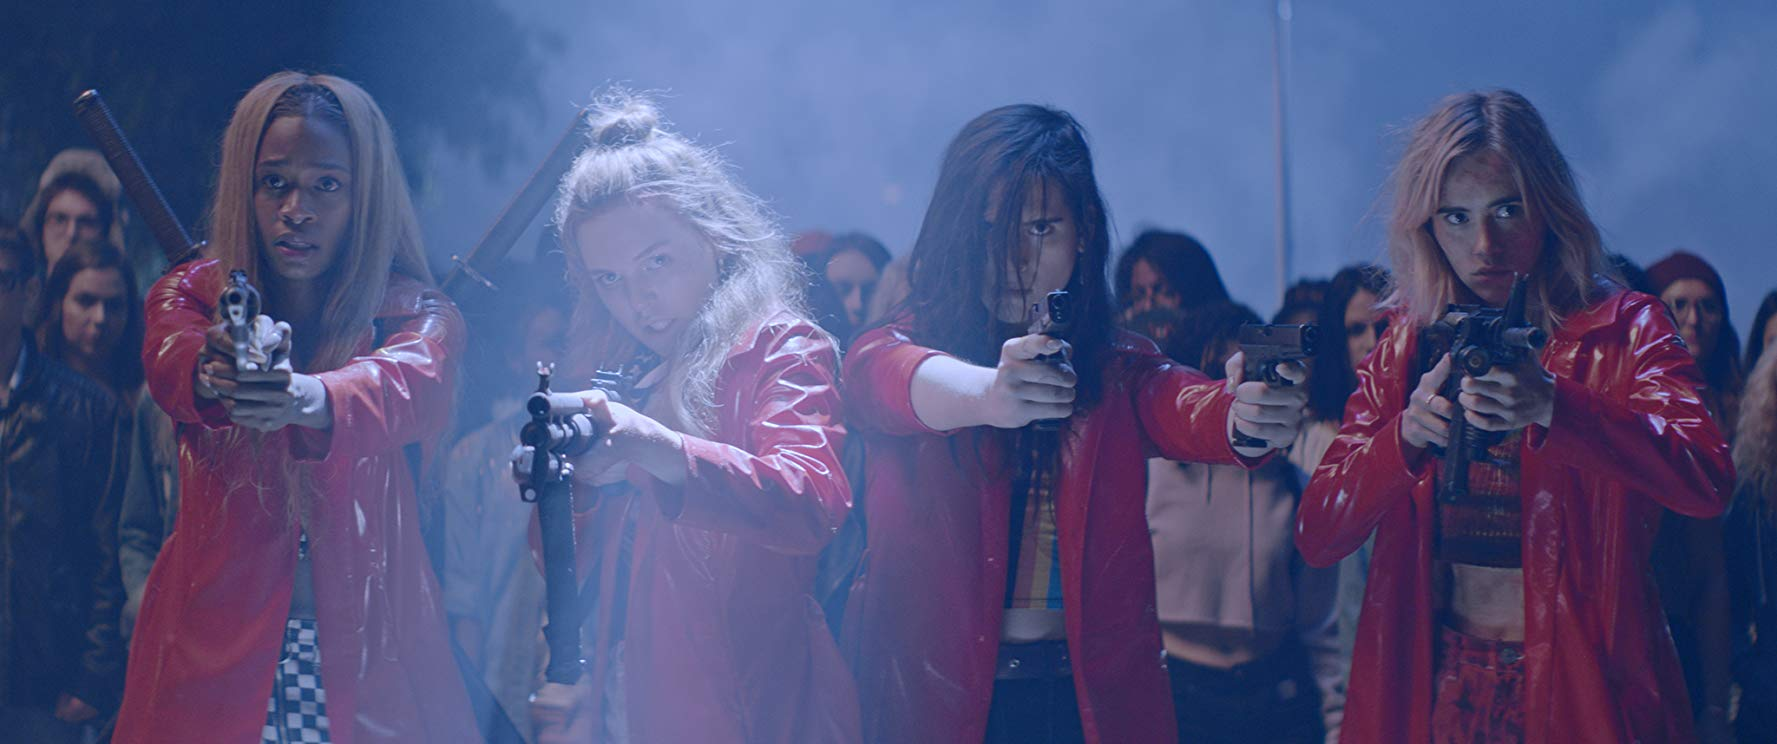 assassination nation pic